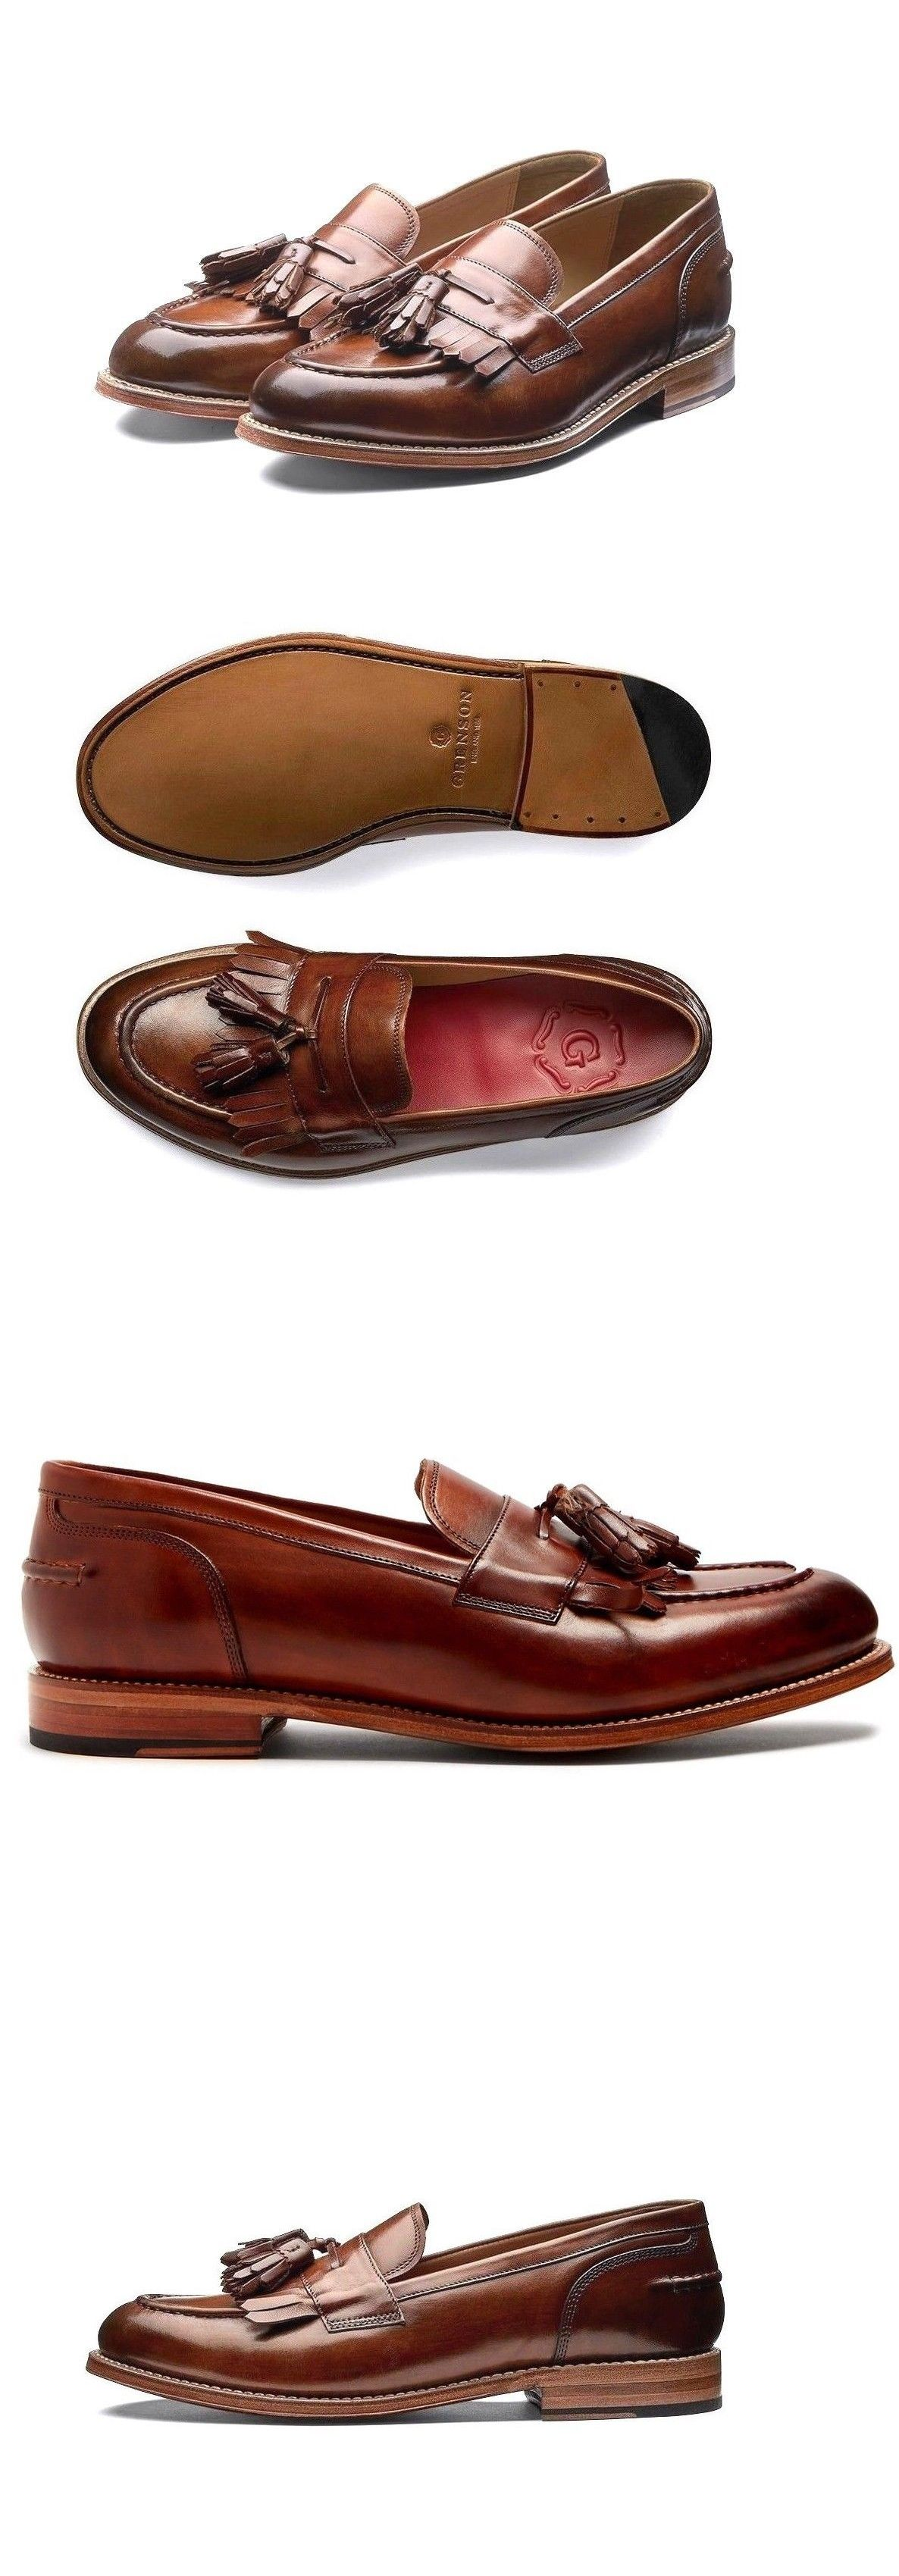 ef9ca971704 Dress Shoes 53120  Grenson Mens Mackenzie British Tan Leather Tassel Kiltie  Loafers Size 10 9 Uk -  BUY IT NOW ONLY   168 on  eBay  dress  shoes   grenson ...